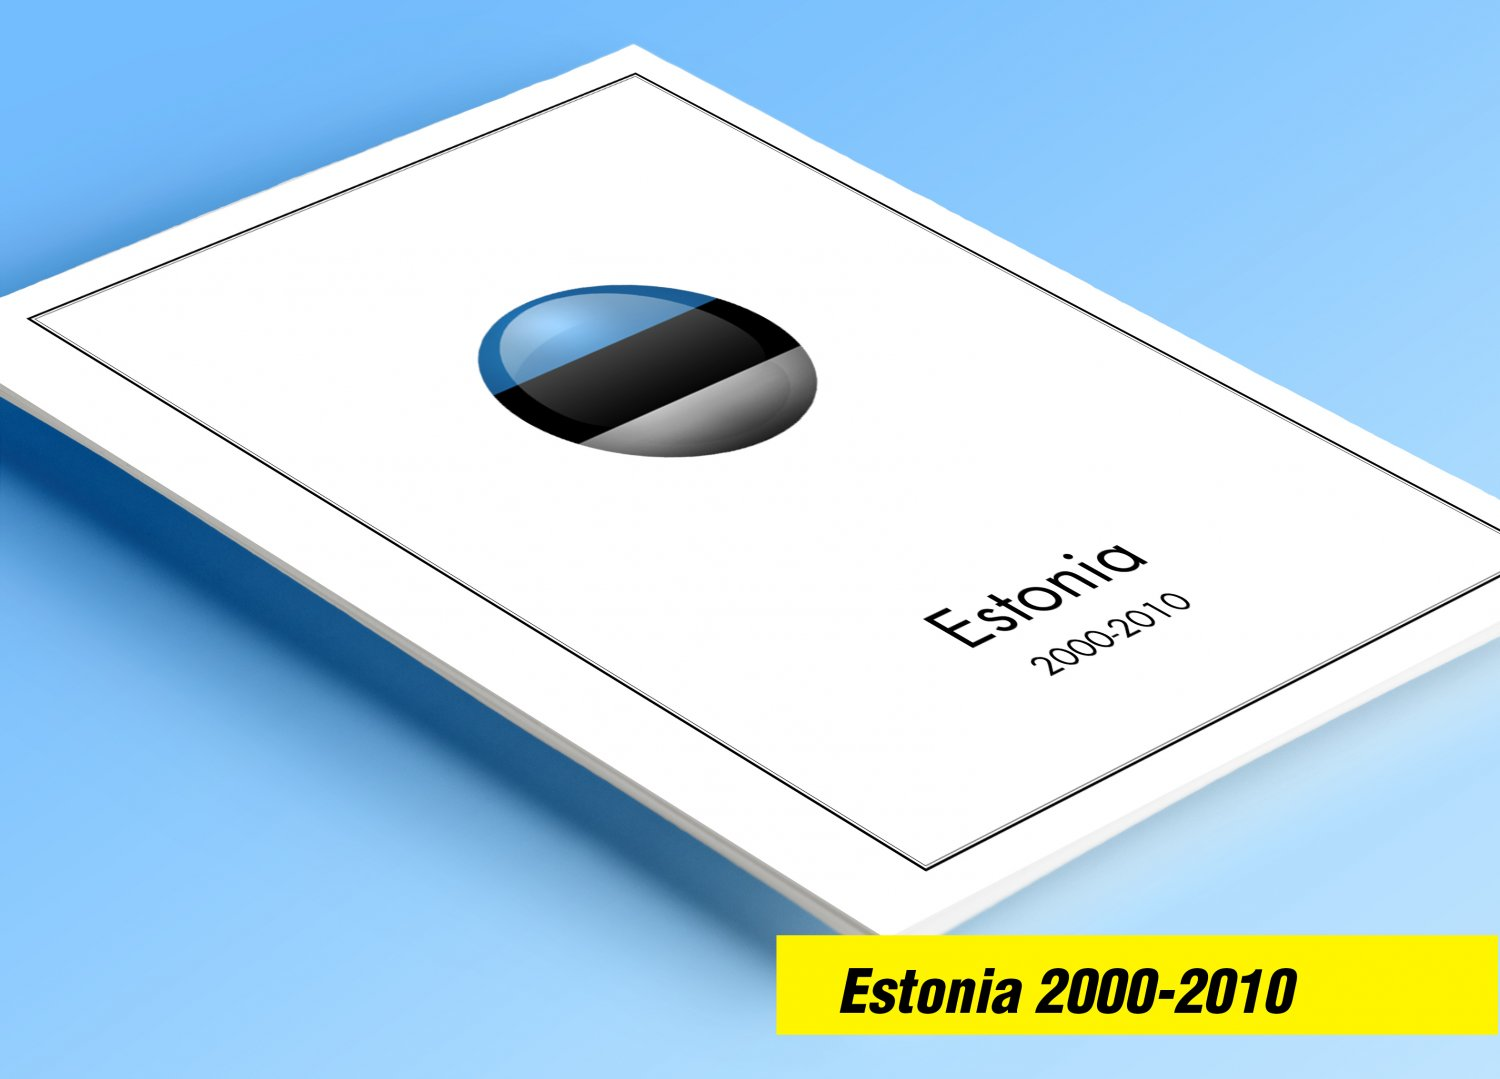 COLOR PRINTED ESTONIA 2000-2010 STAMP ALBUM  PAGES (36 illustrated pages)